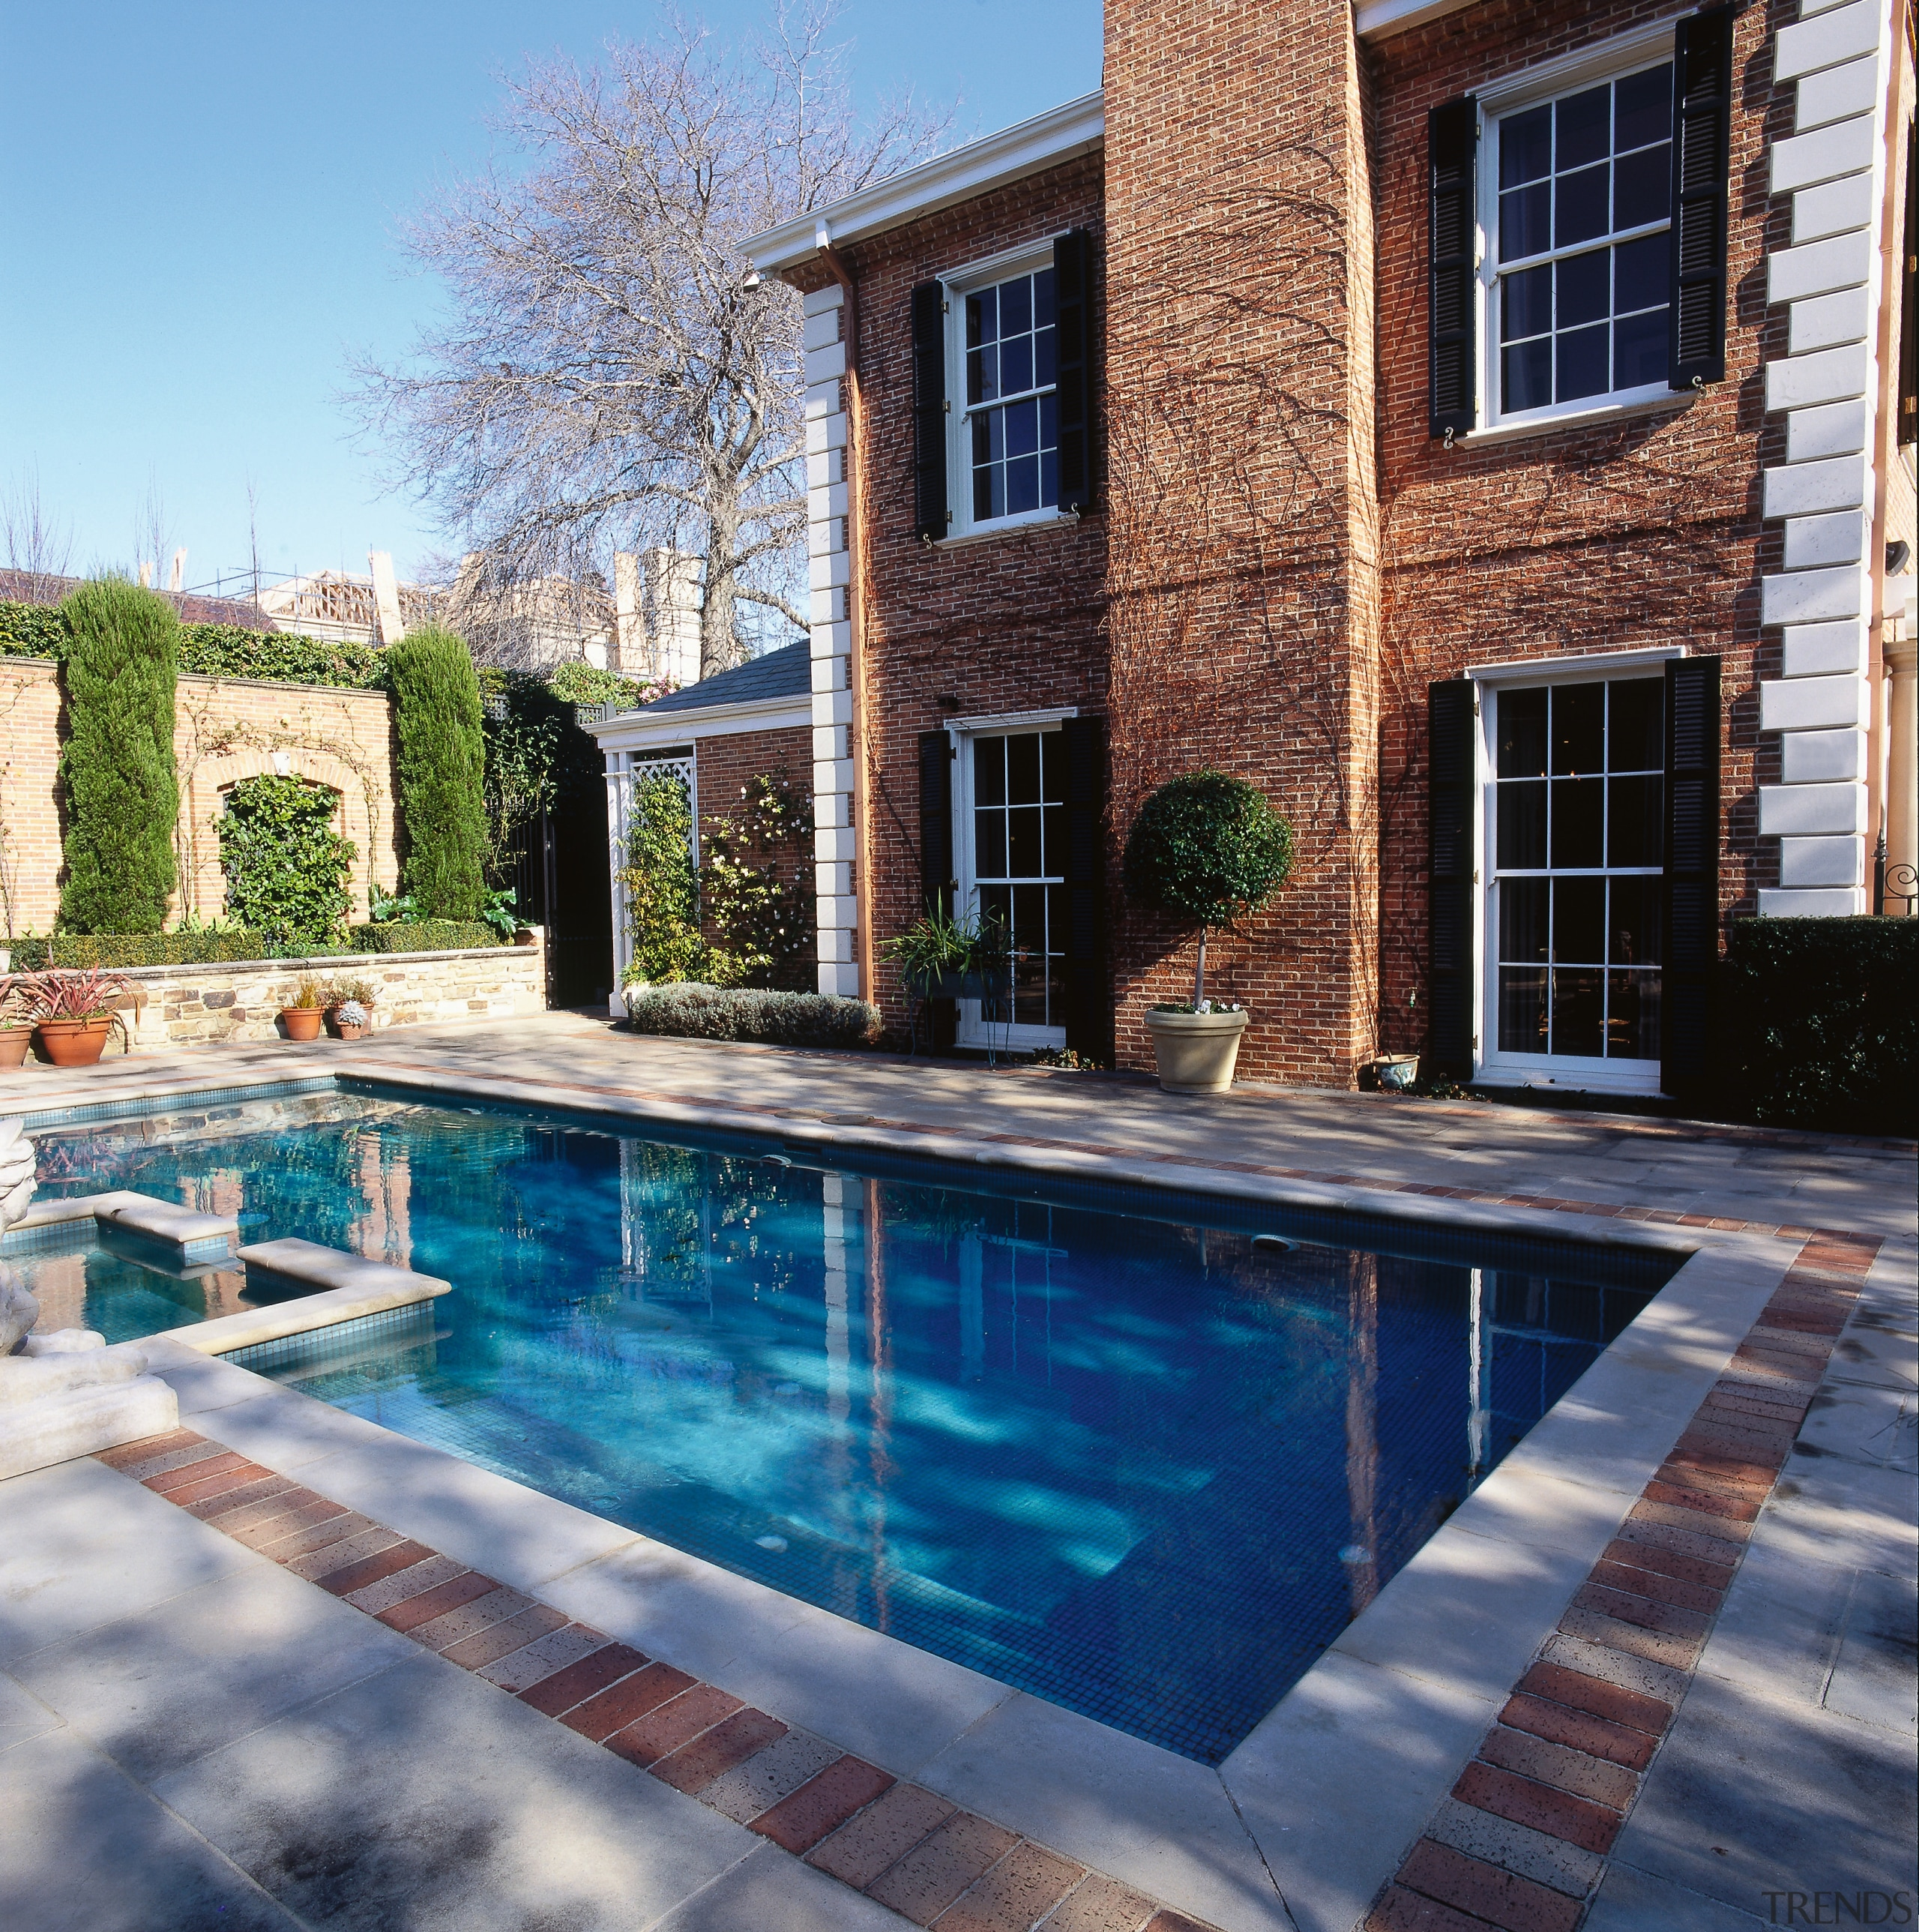 View of the pool and patio area, brick backyard, estate, home, house, outdoor structure, patio, property, real estate, reflection, swimming pool, water, window